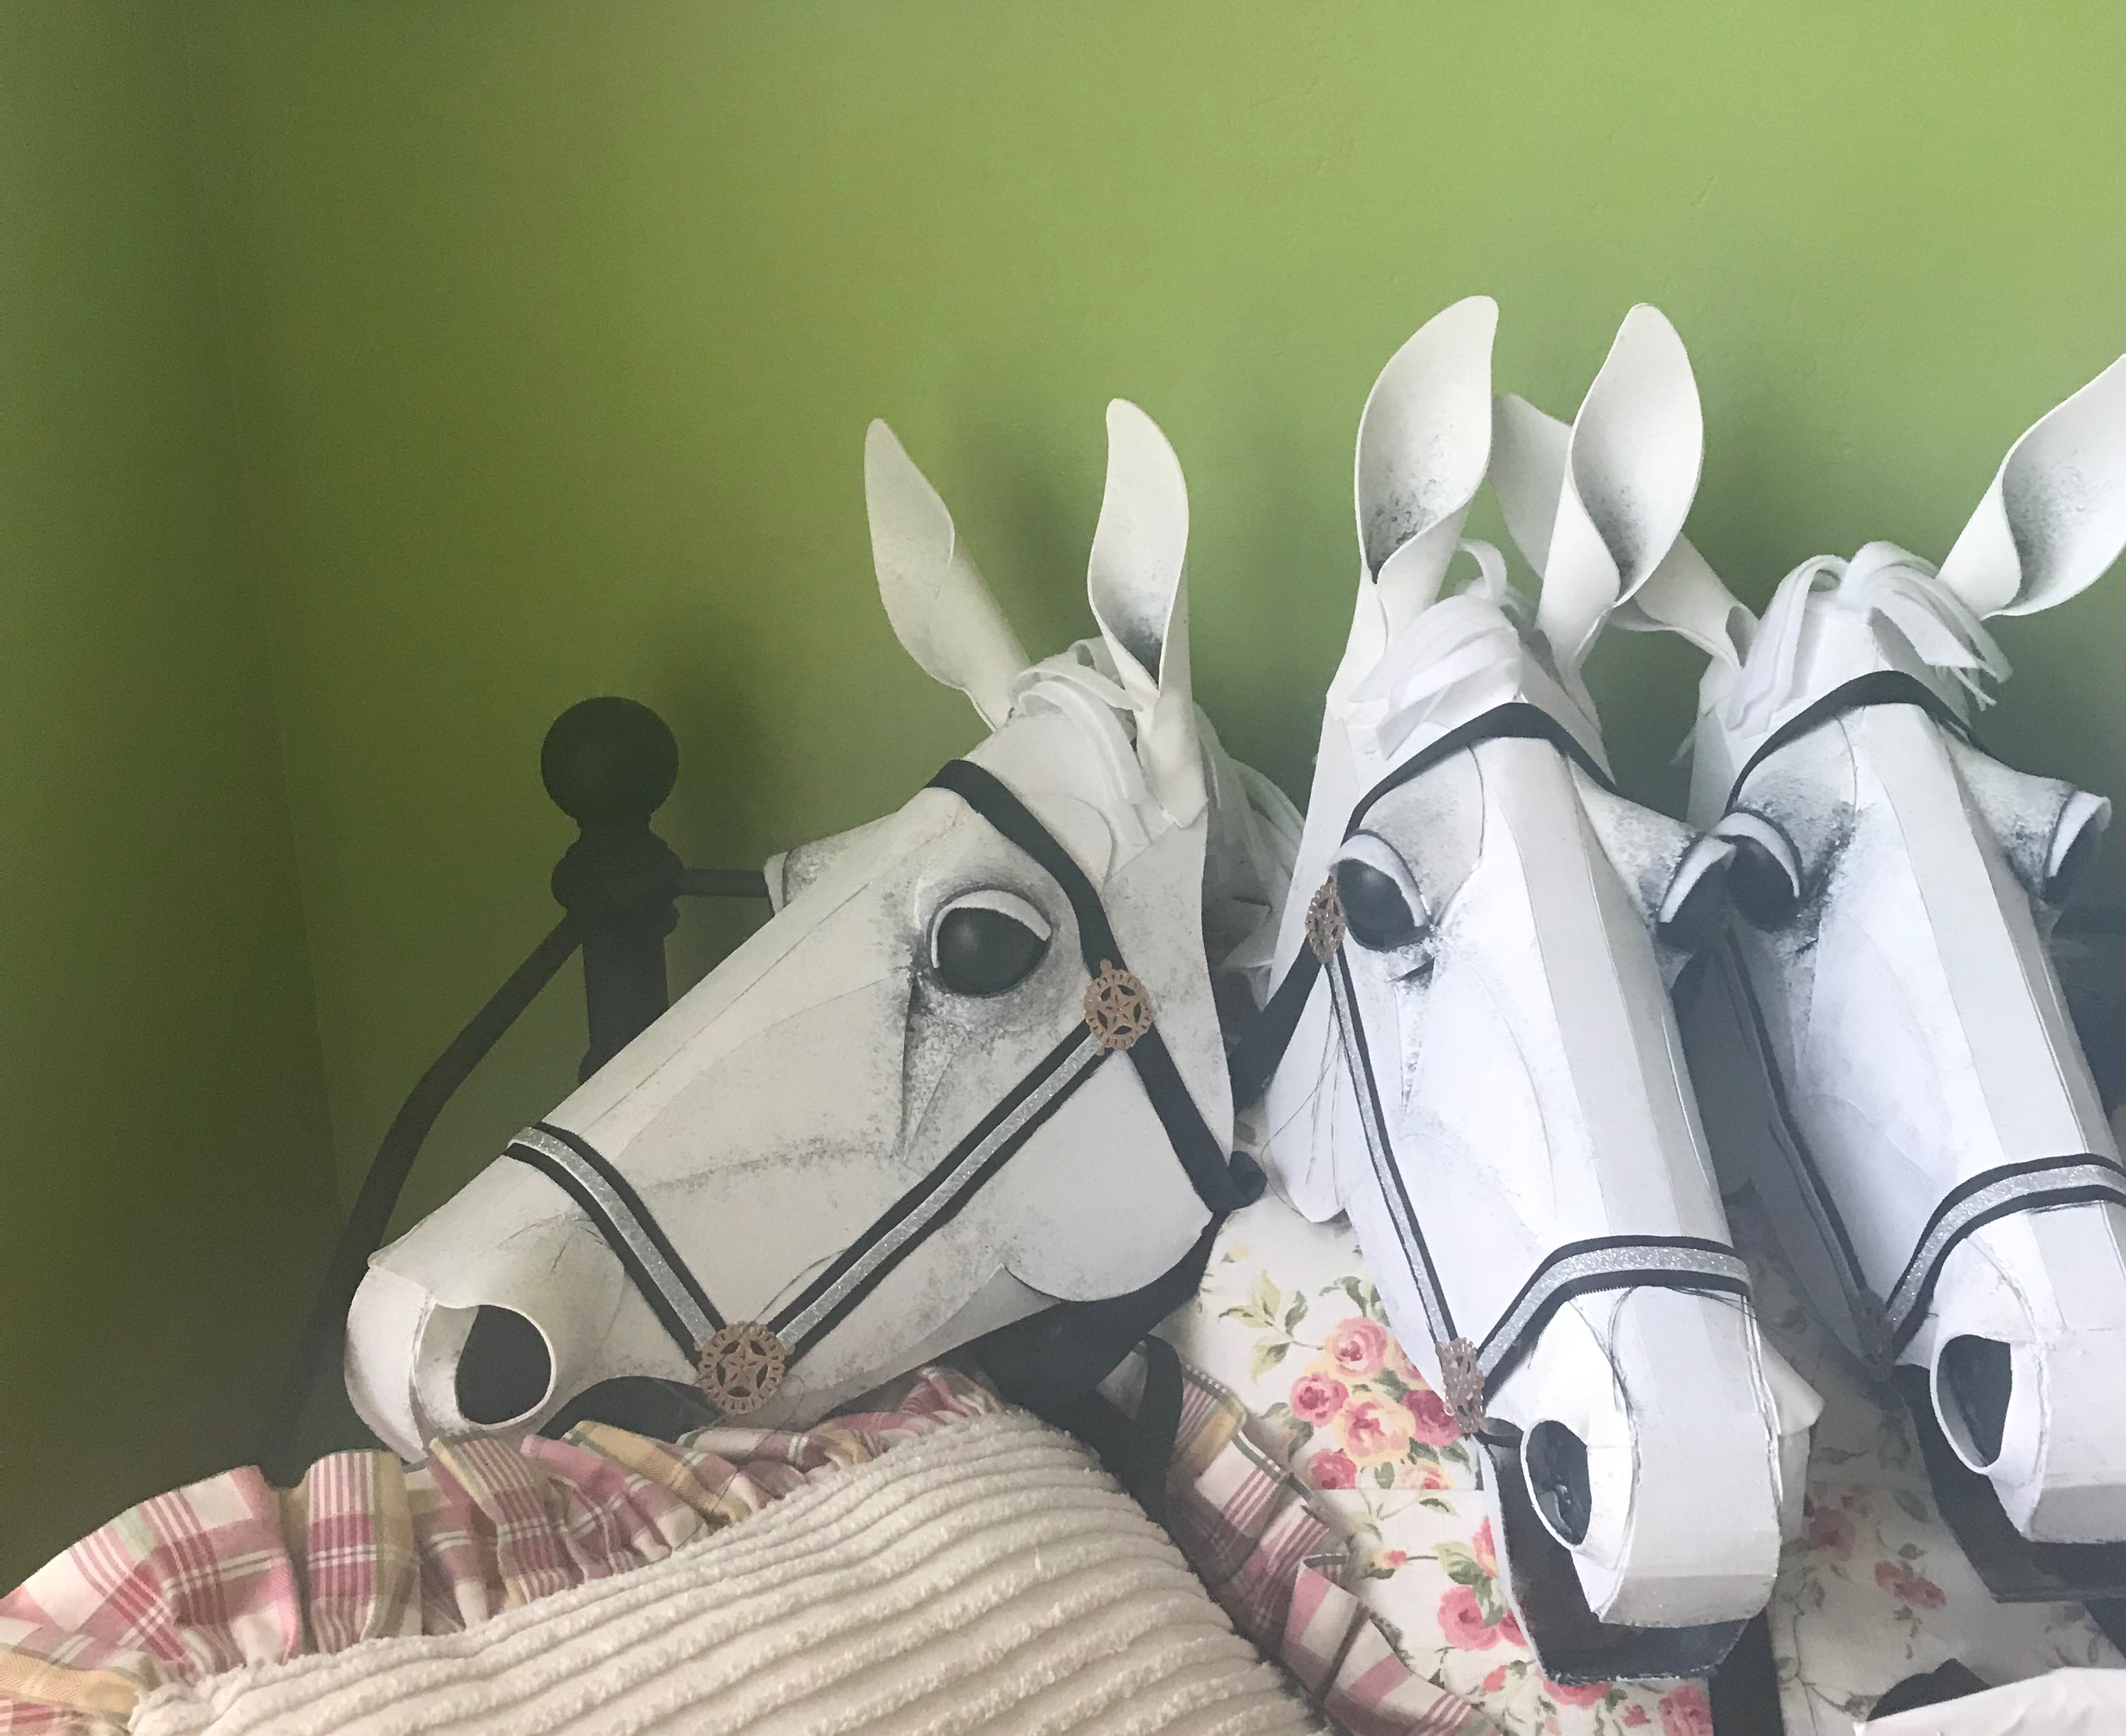 Ah-Mazing Horse heads and tales for Cinderella for sale